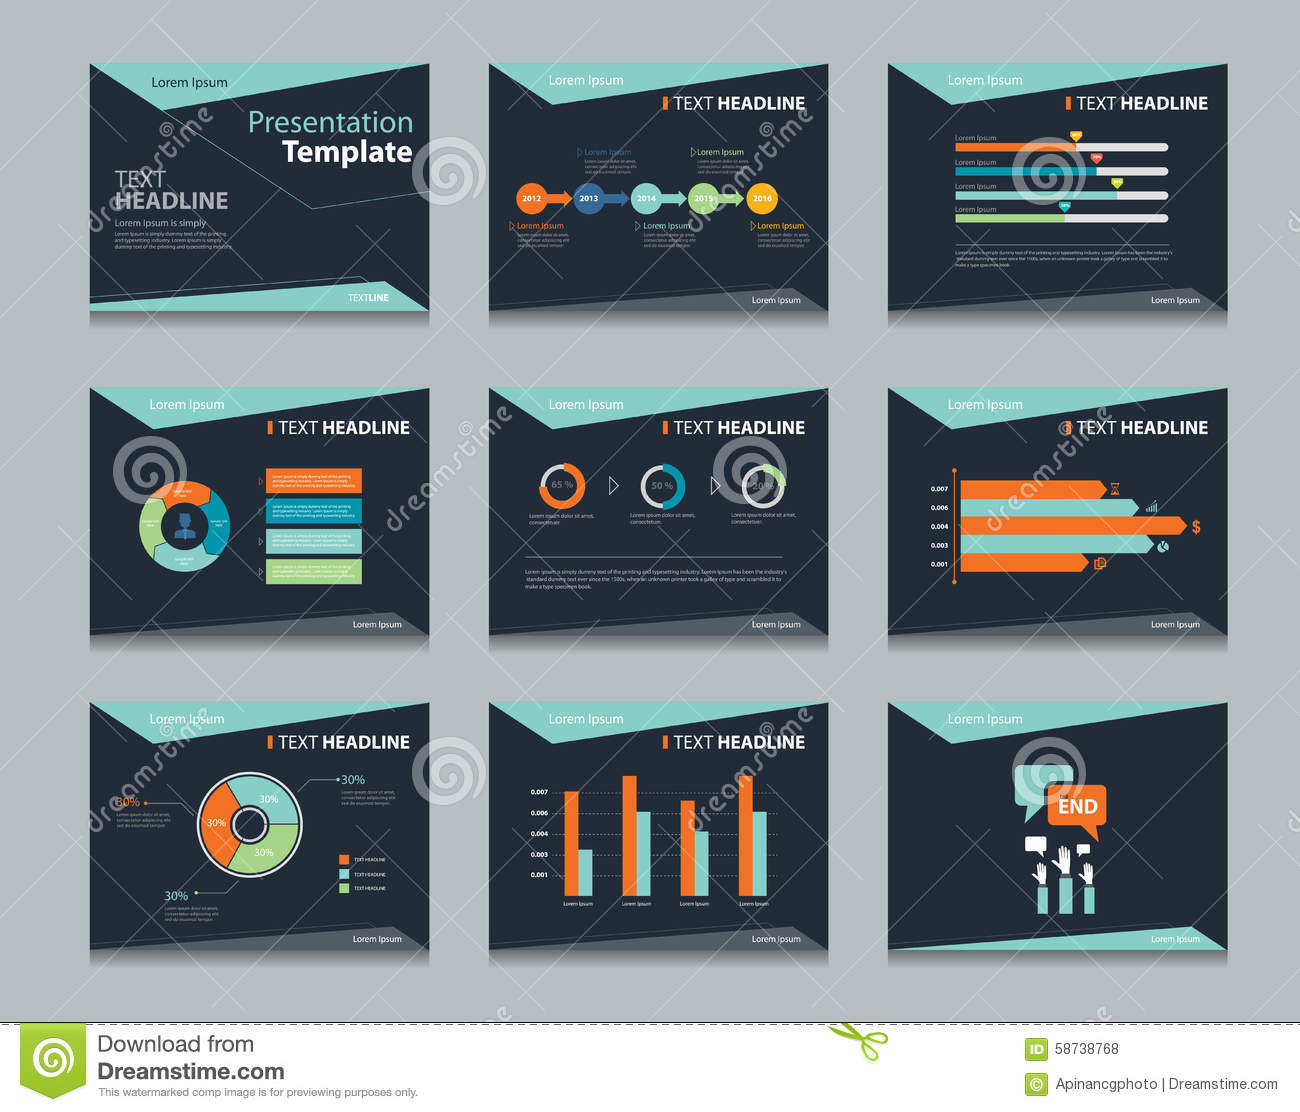 Apresentacao power point profissional download free professional our free powerpoint slides are designed based on our premium users download trends and our audience suggestions toneelgroepblik Image collections